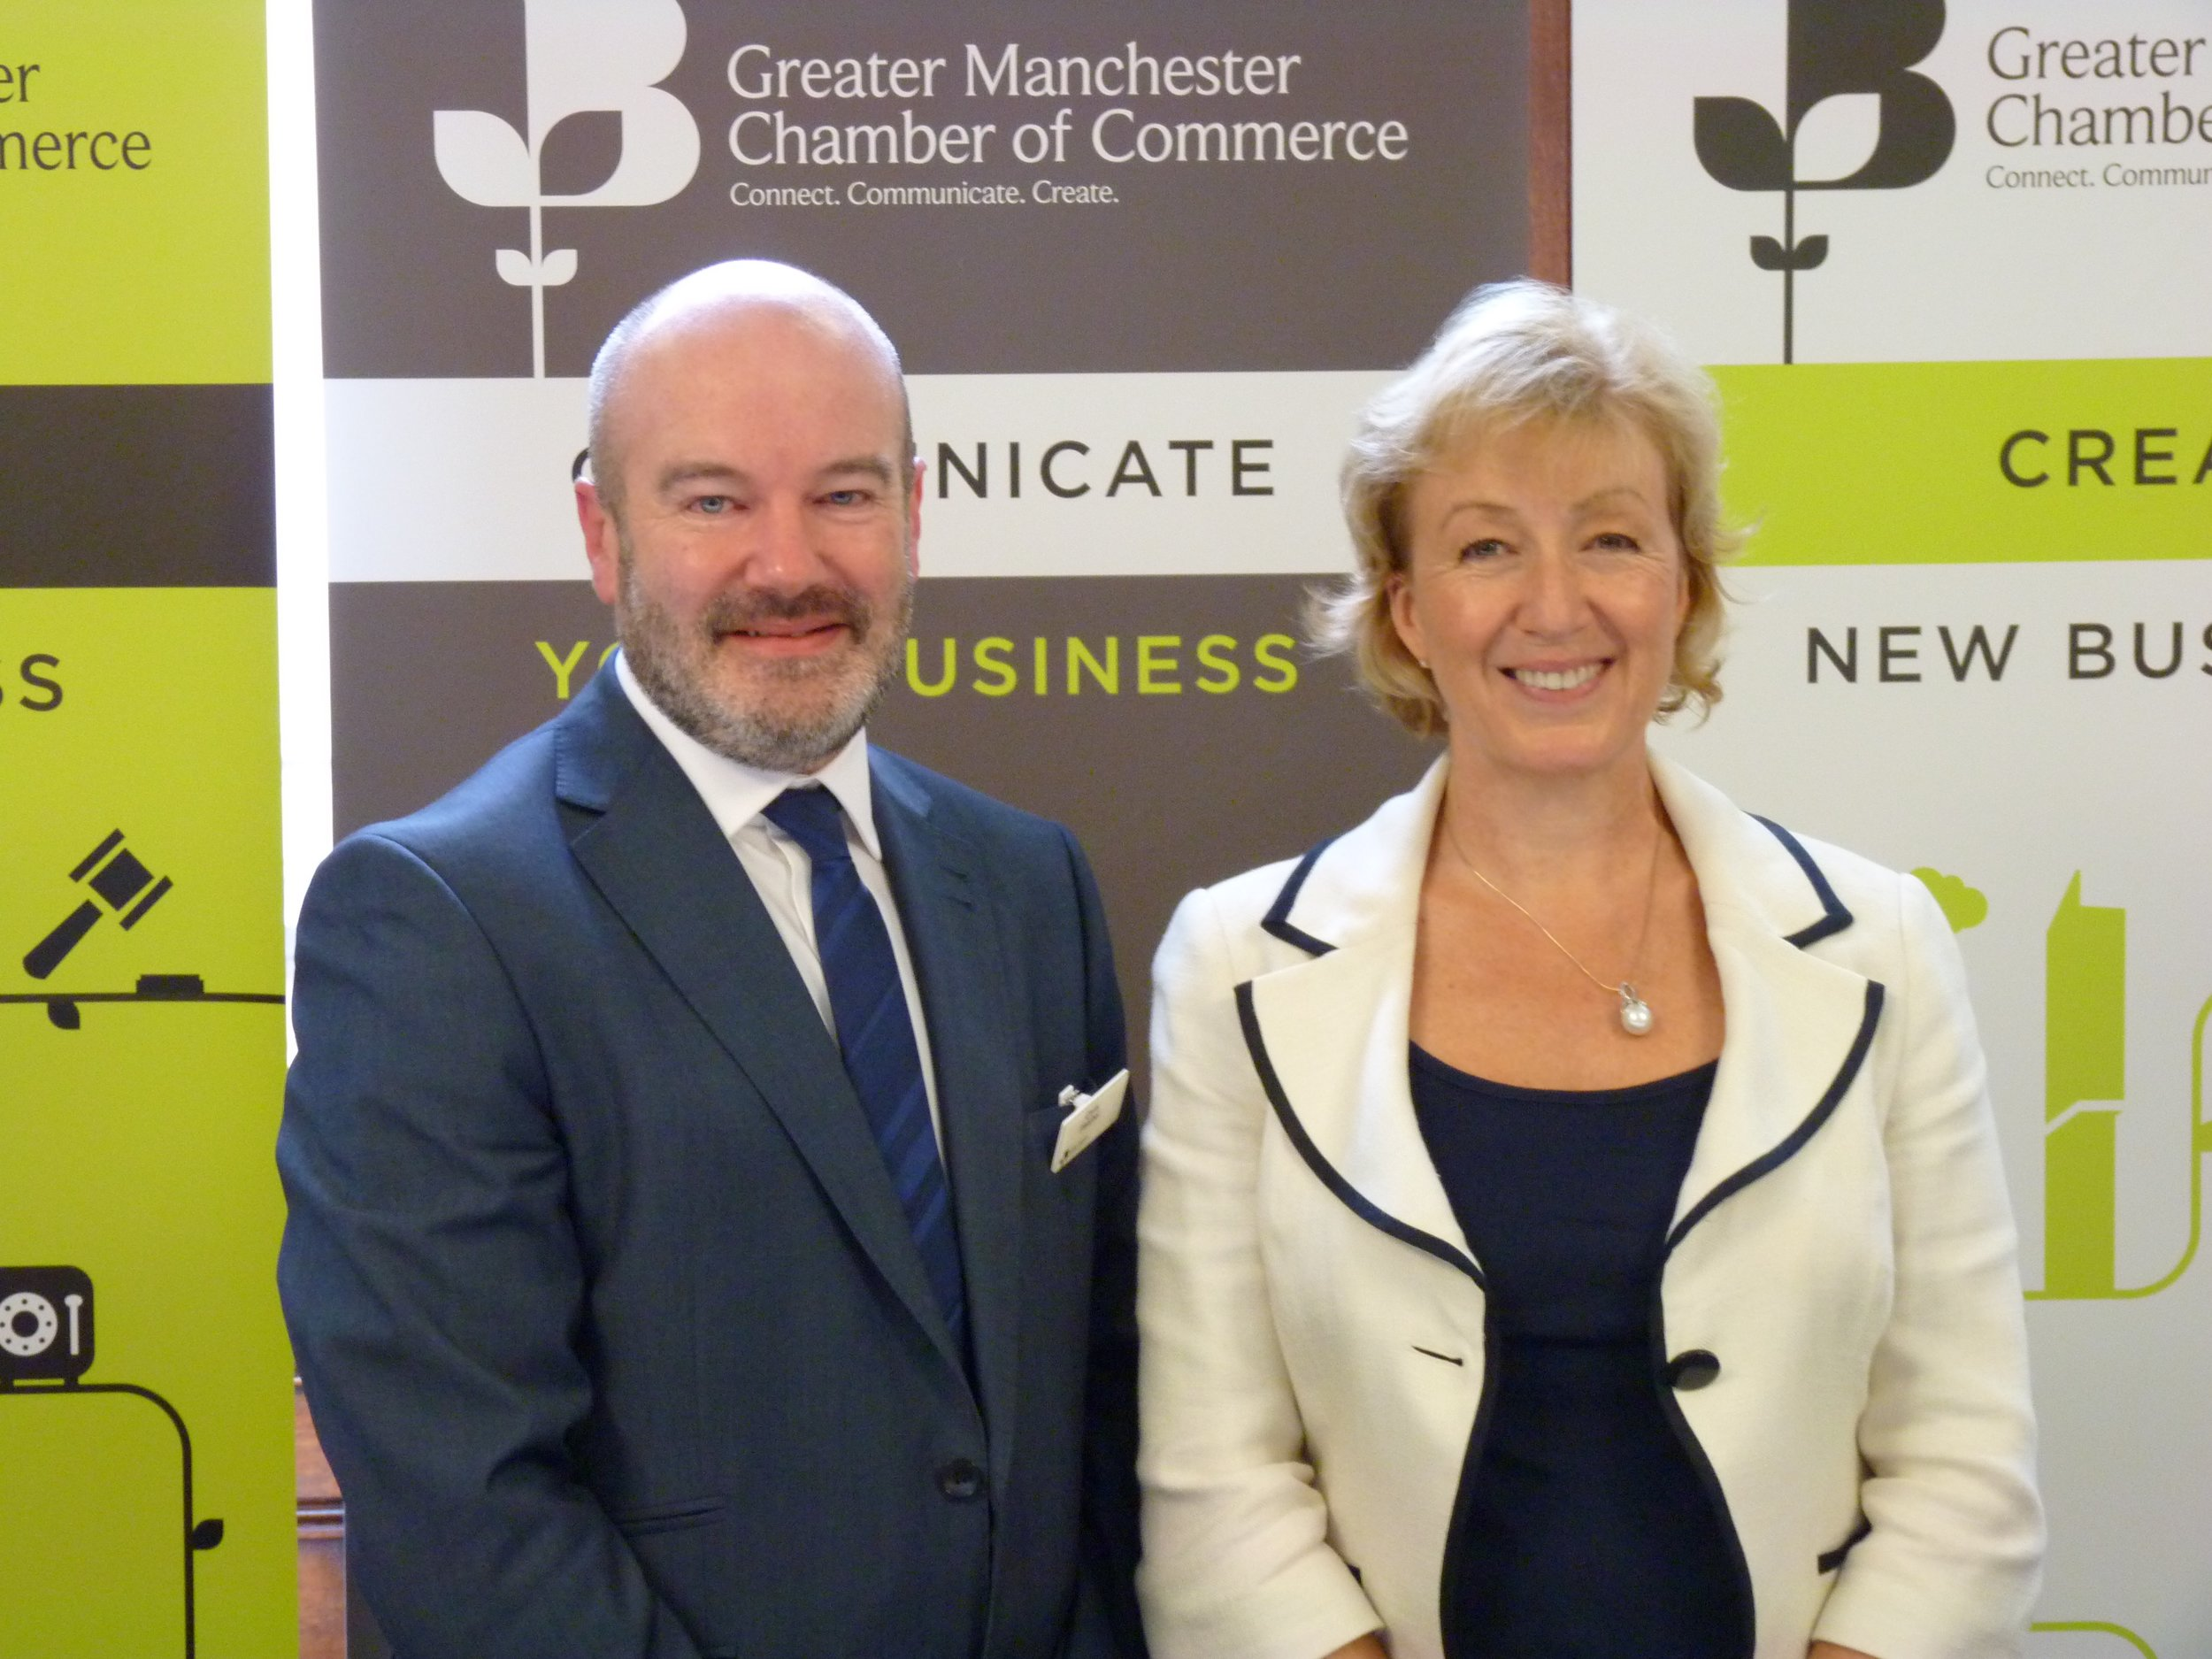 20150806 Leadsom at Shale Roundtable in Manchester [02].jpg